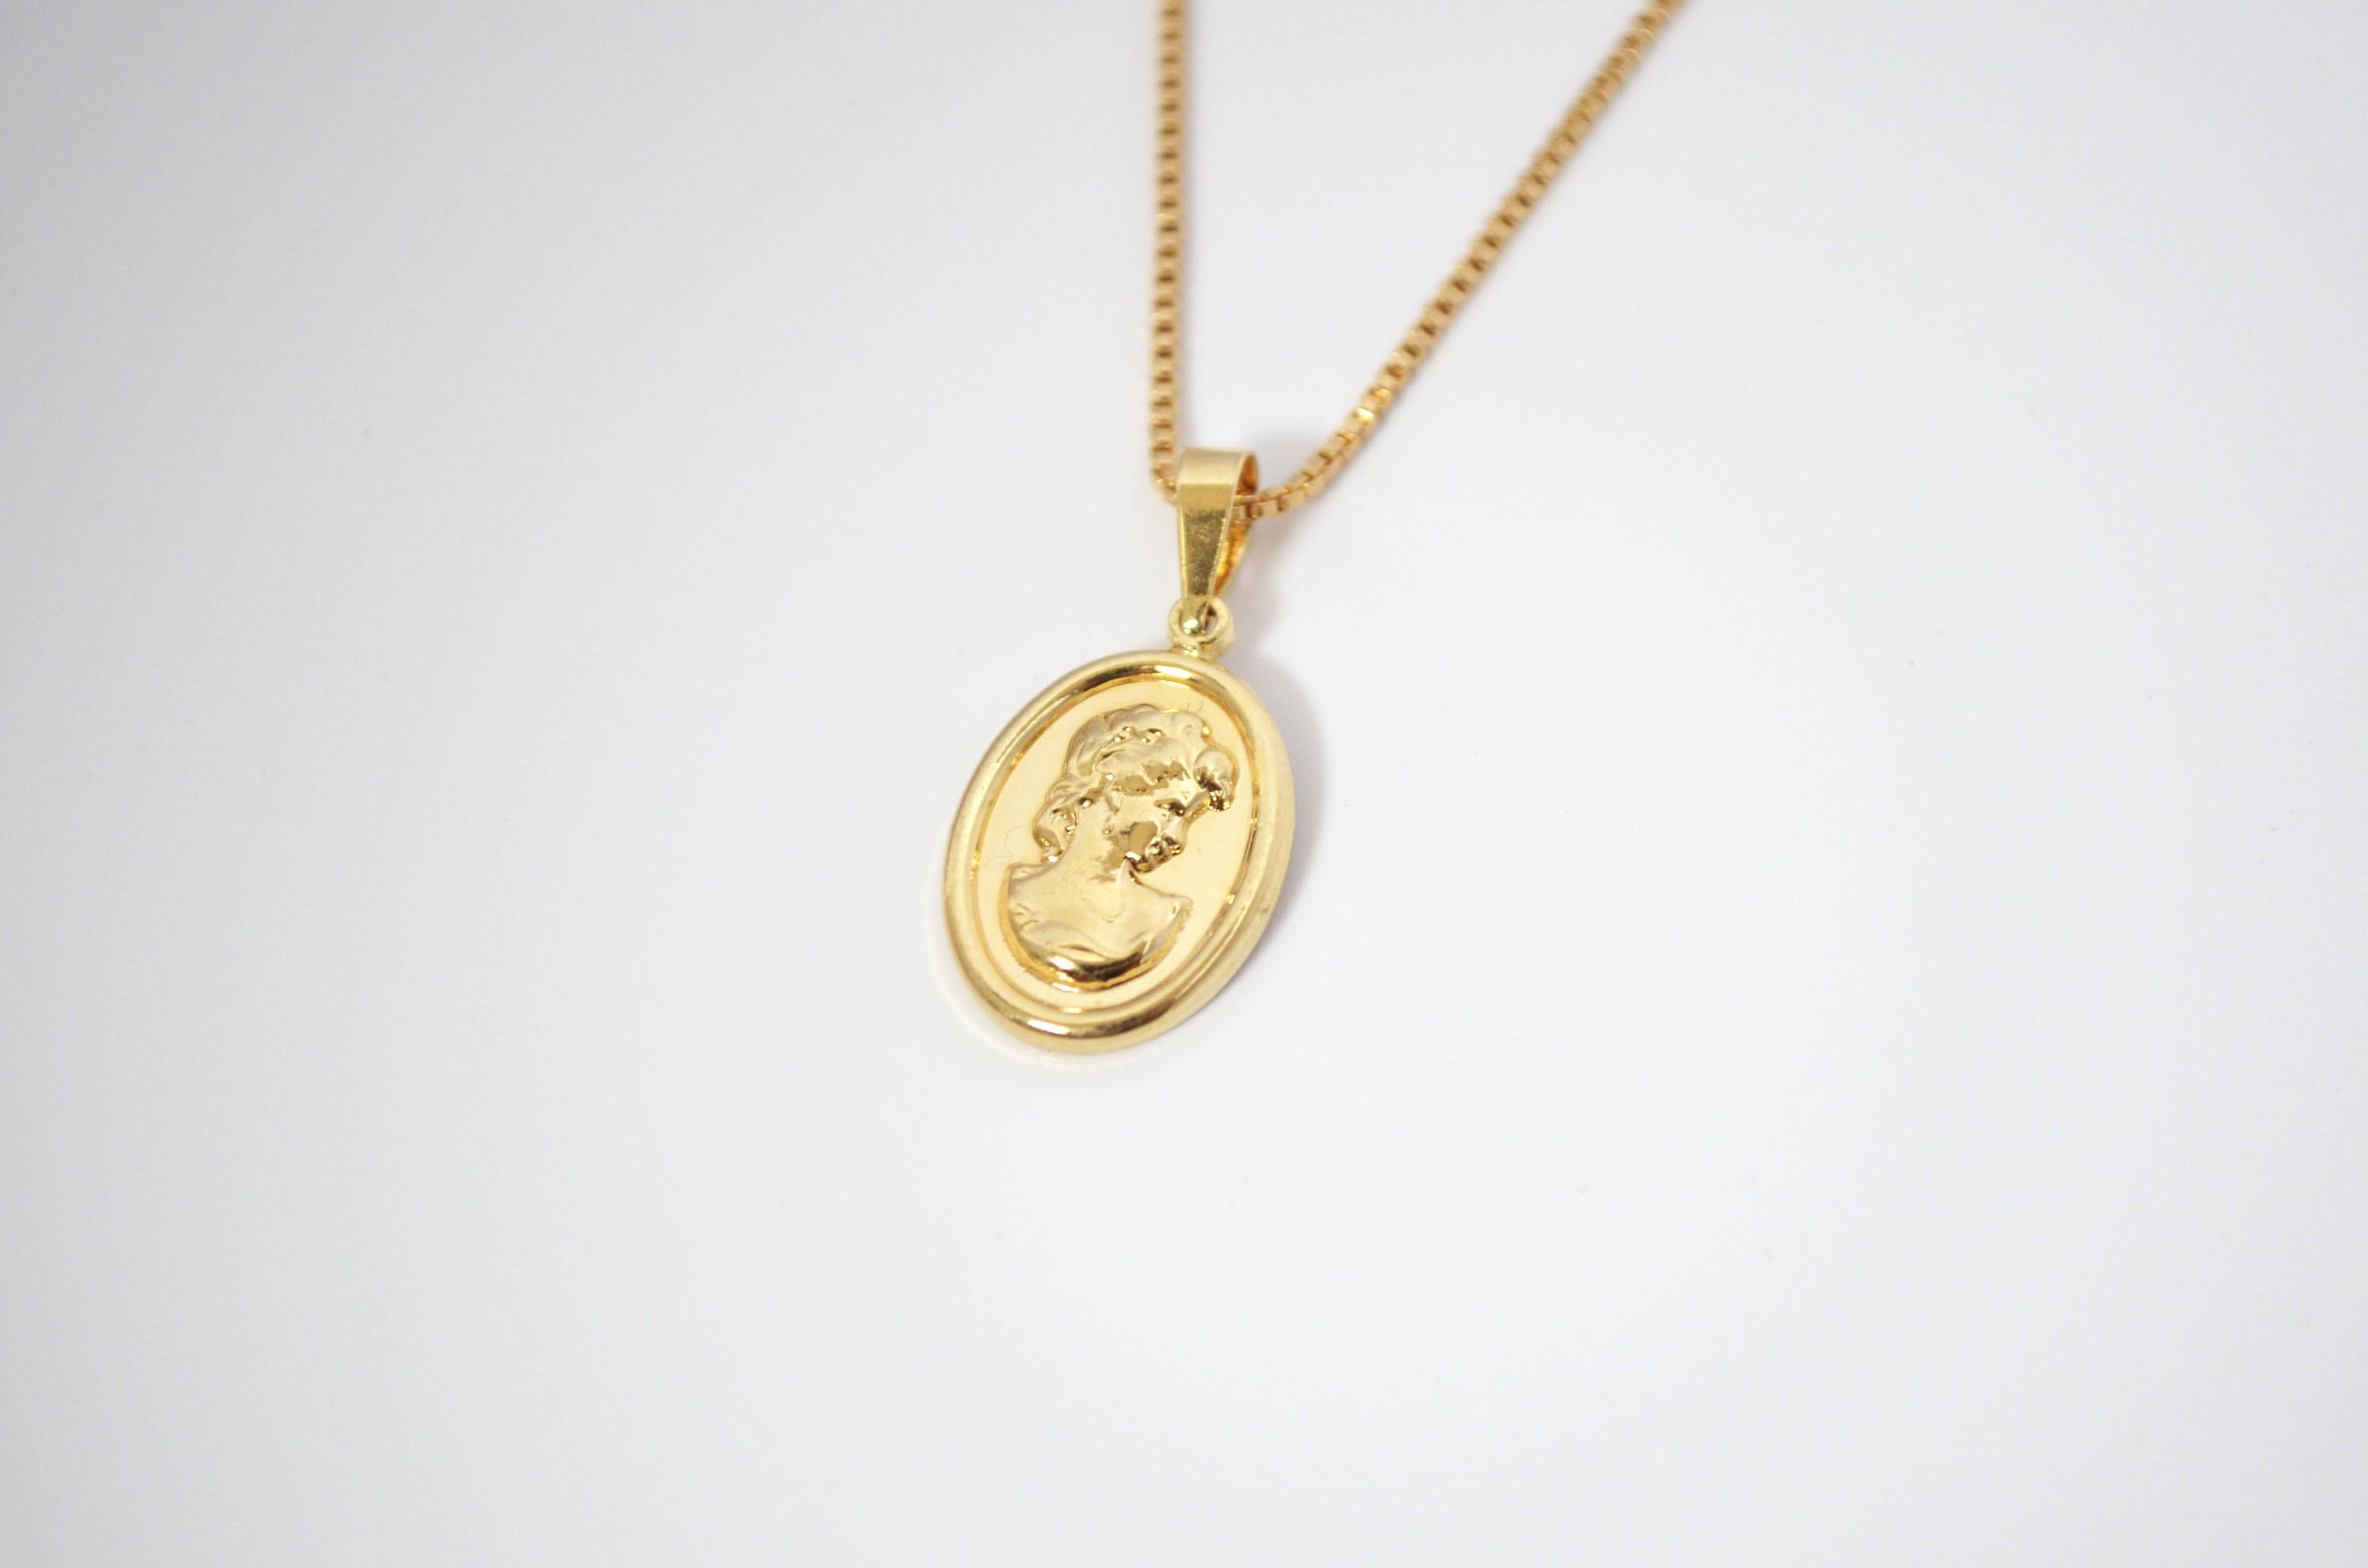 medallion necklace nation gucci gold blingby tone l lion chain mens pendant pattern